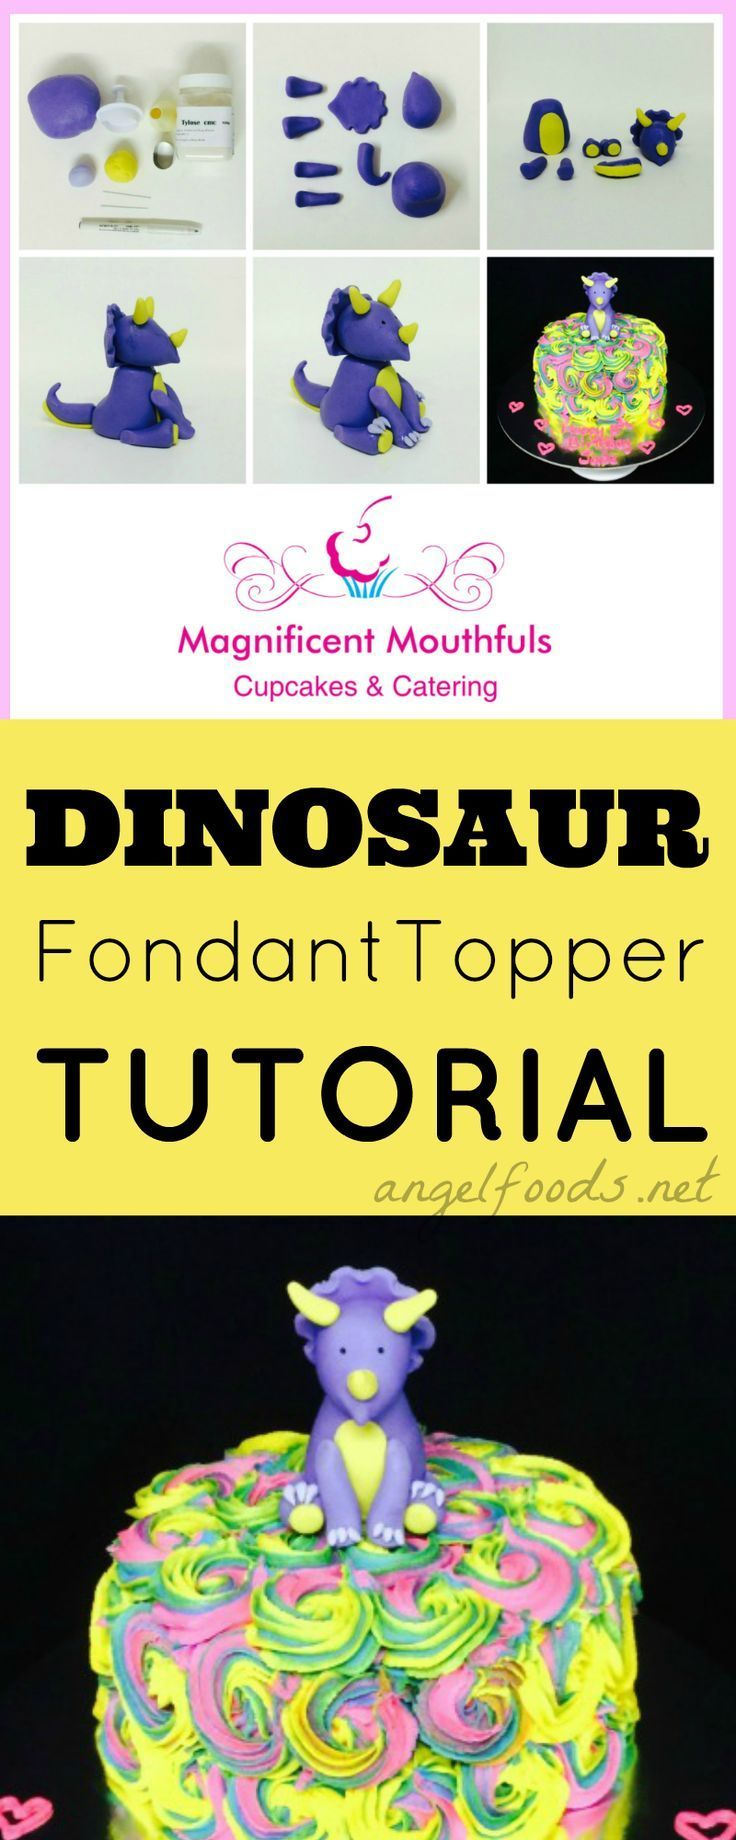 Cute Dinosaur Fondant Cake Topper Tutorial | This is a wonderfully short, simple tutorial on how to make this ever so cute (& easy) dinosaur topper. Perfect for on top of cakes, made with fondant (or gumpaste) or even chocolate modelling paste. | http://a